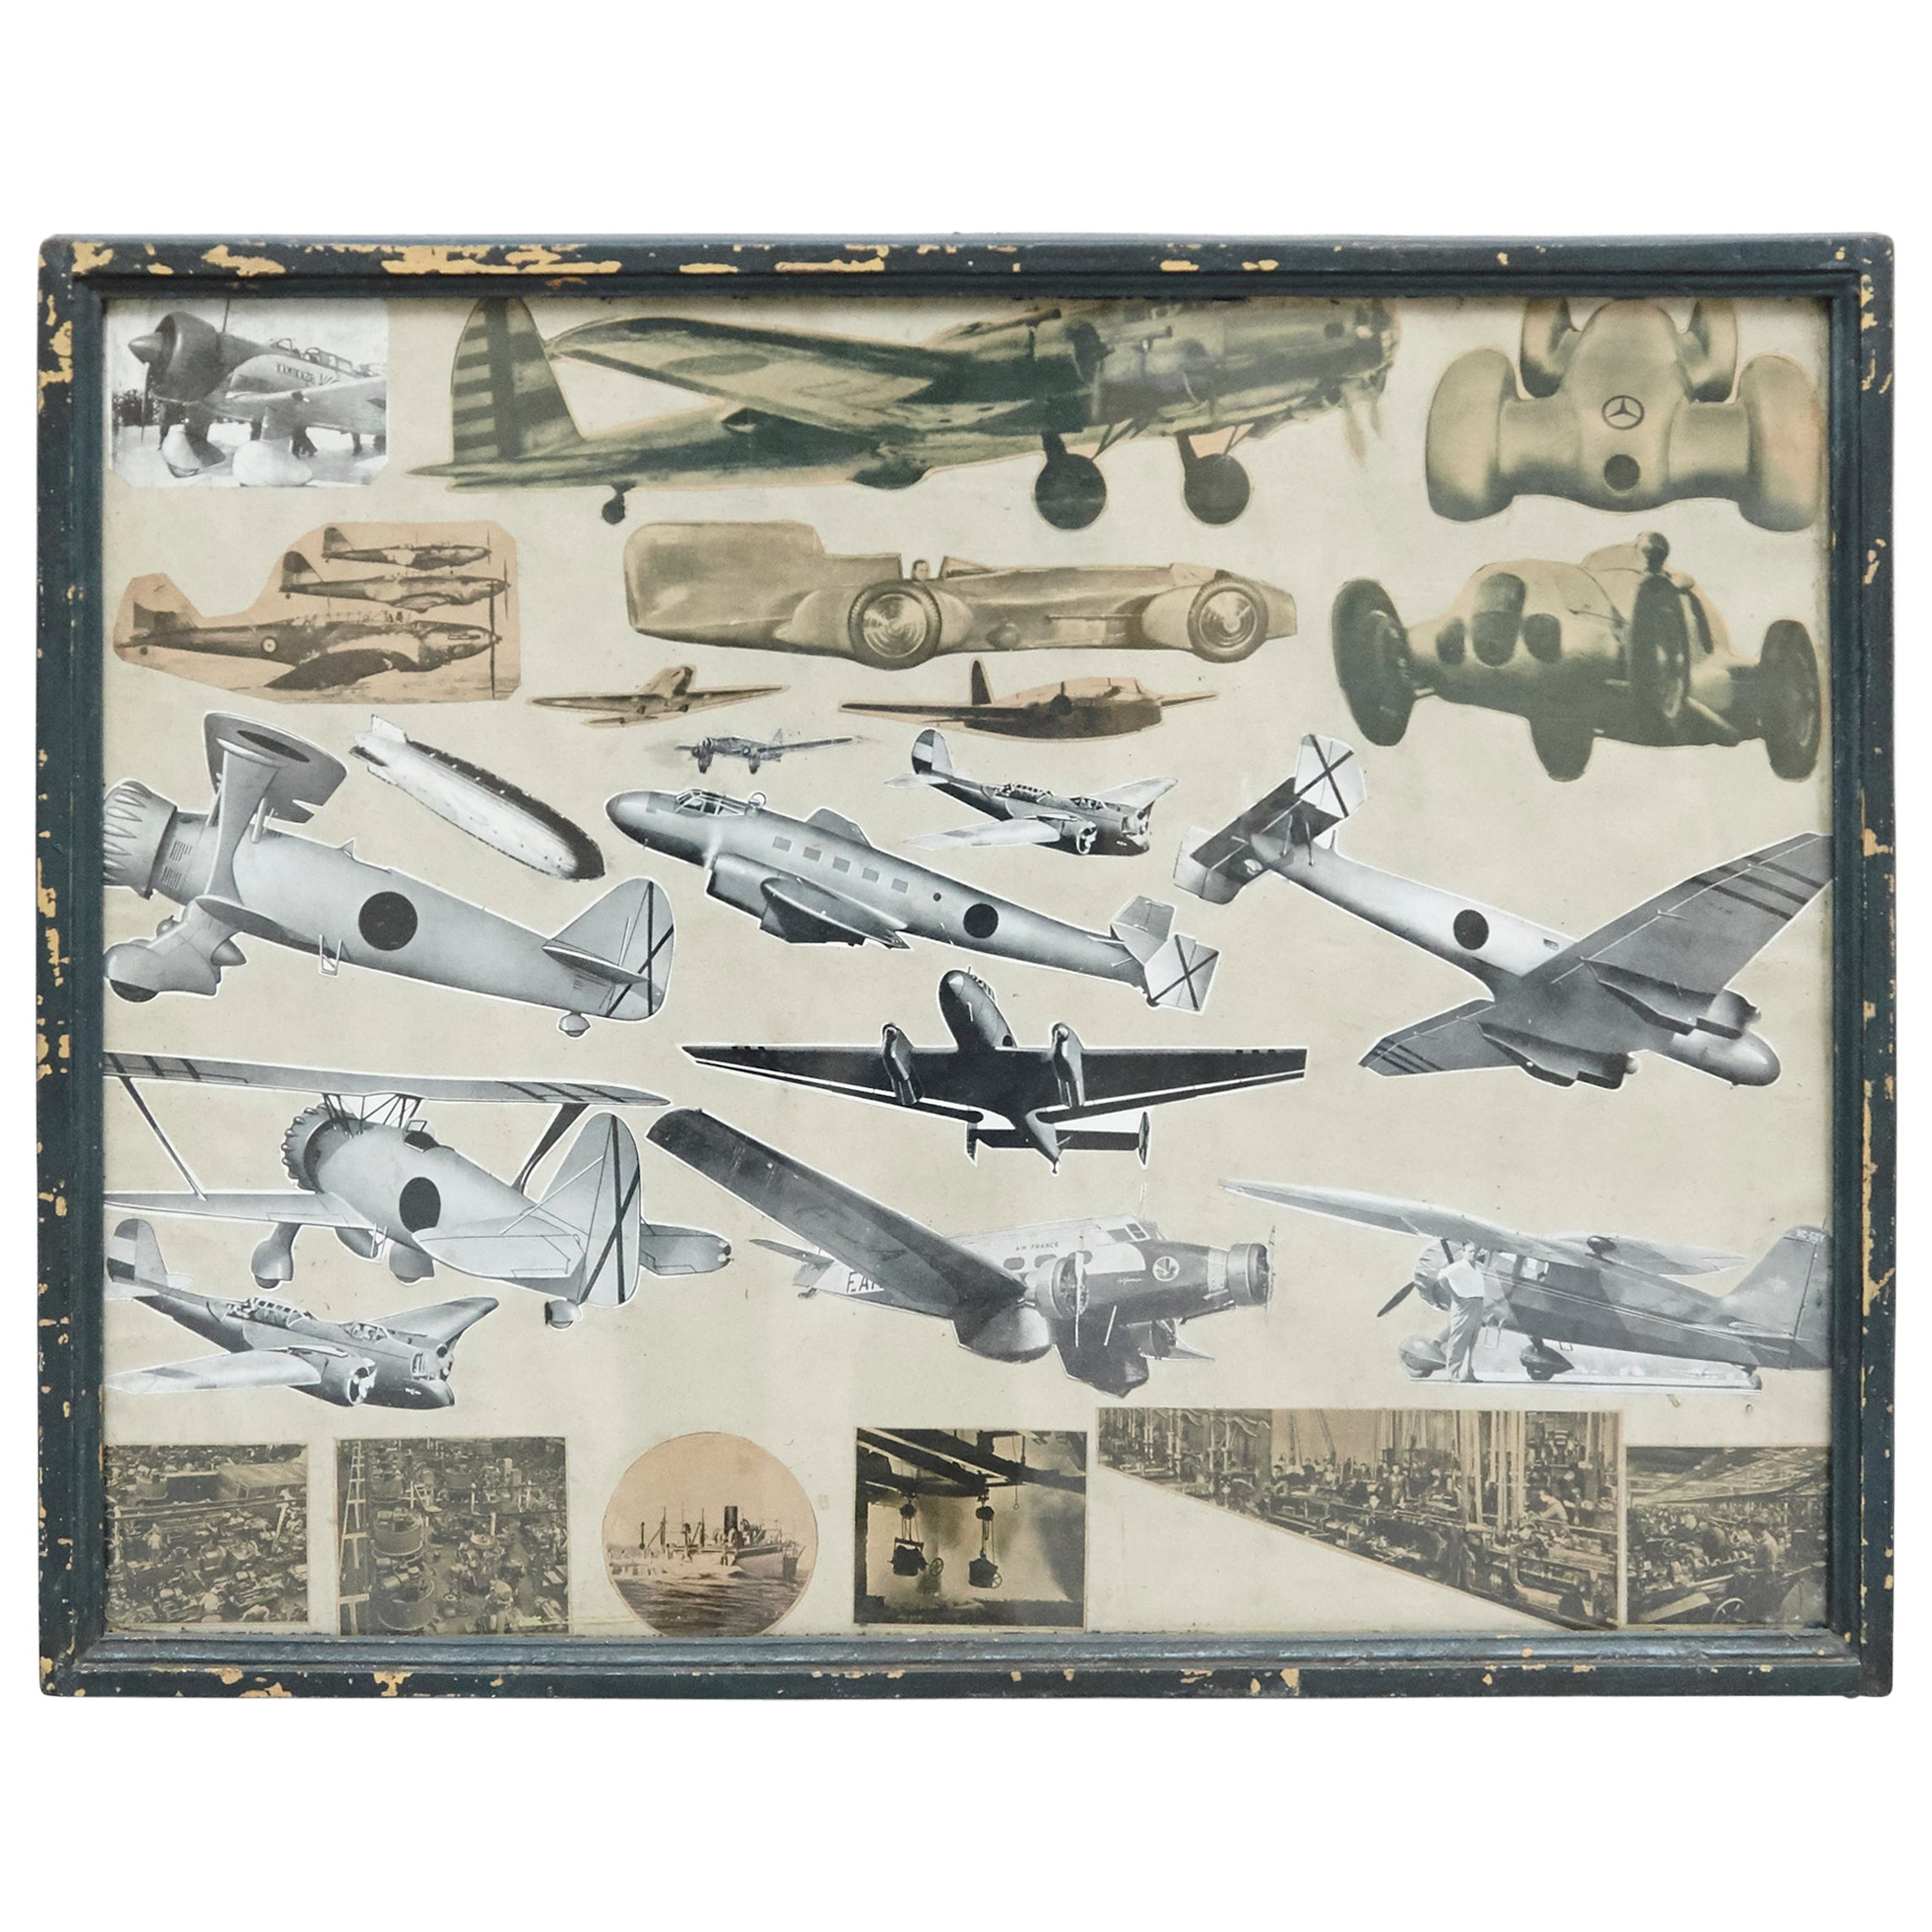 Early 20th Century French Antique Aviation Collage Composition